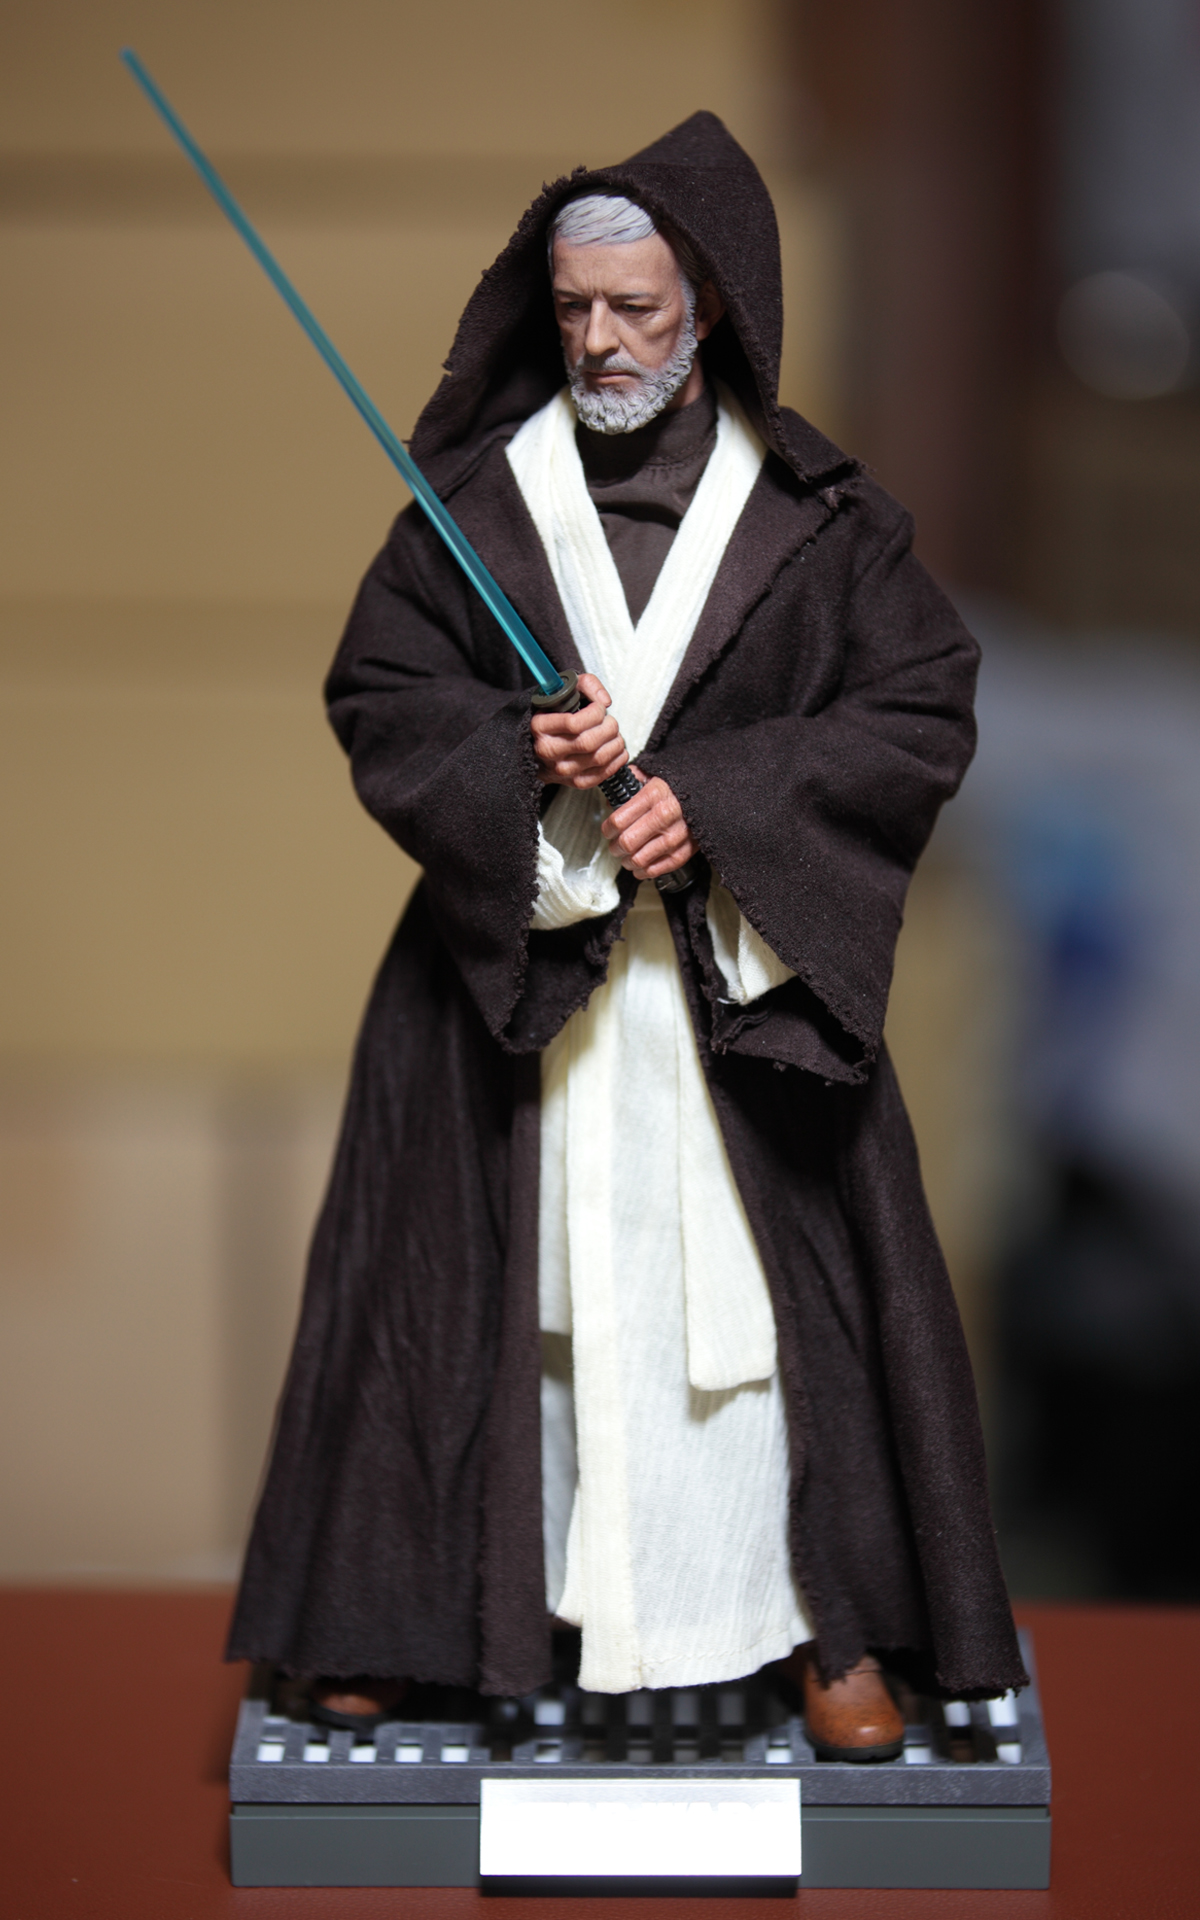 hottoys-star-wars-episode-IV-a-new-hope-obi-wan-kenobi-picture13